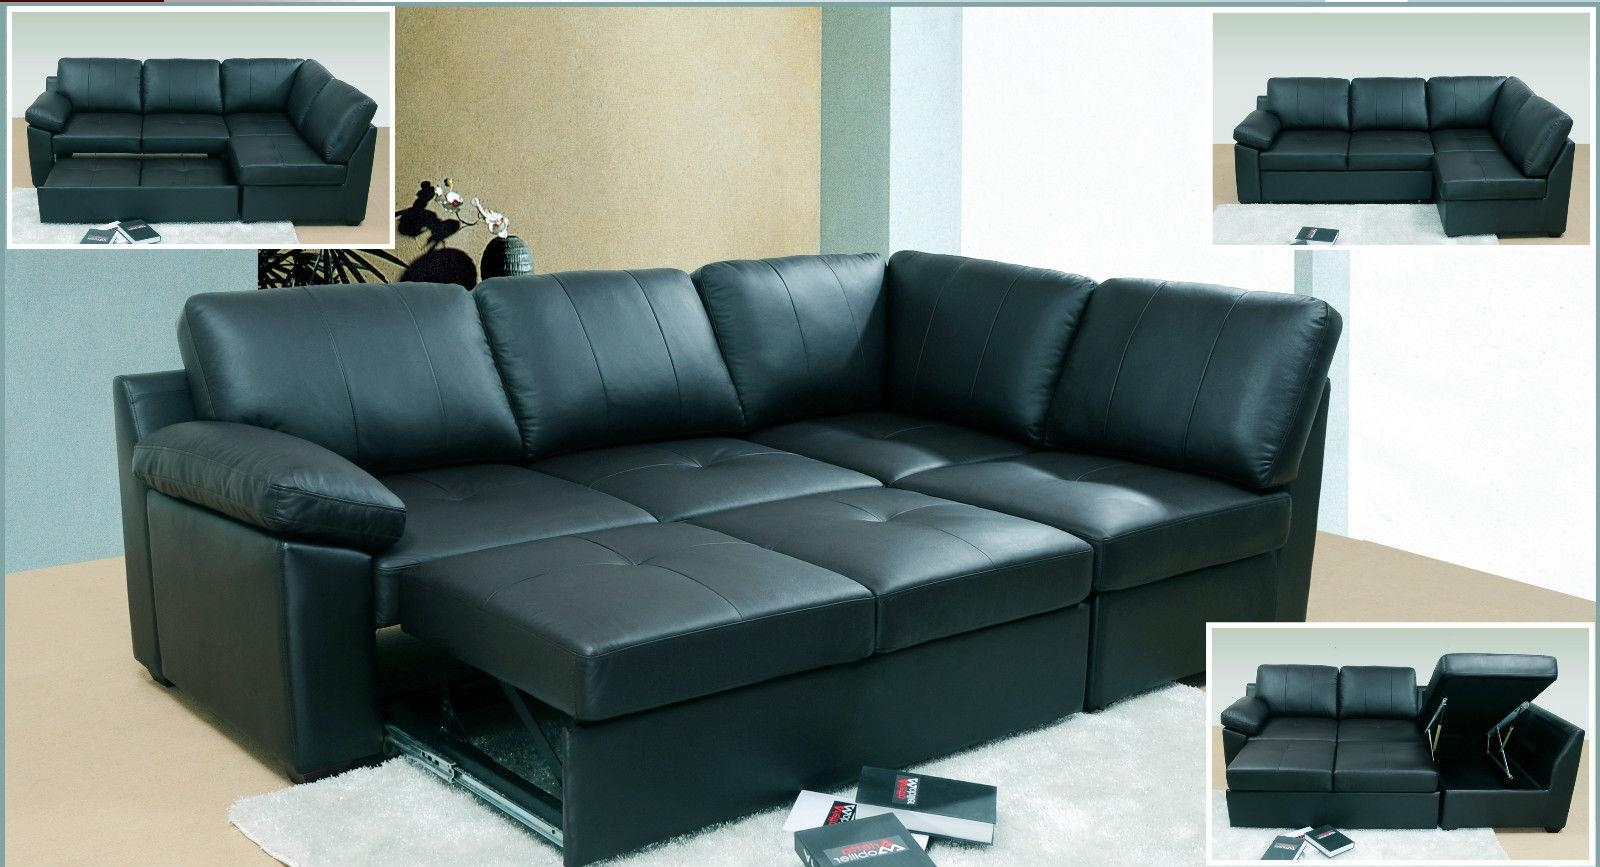 Sofa Bed Leather Within Leather Sofa Beds With Storage (Image 19 of 20)